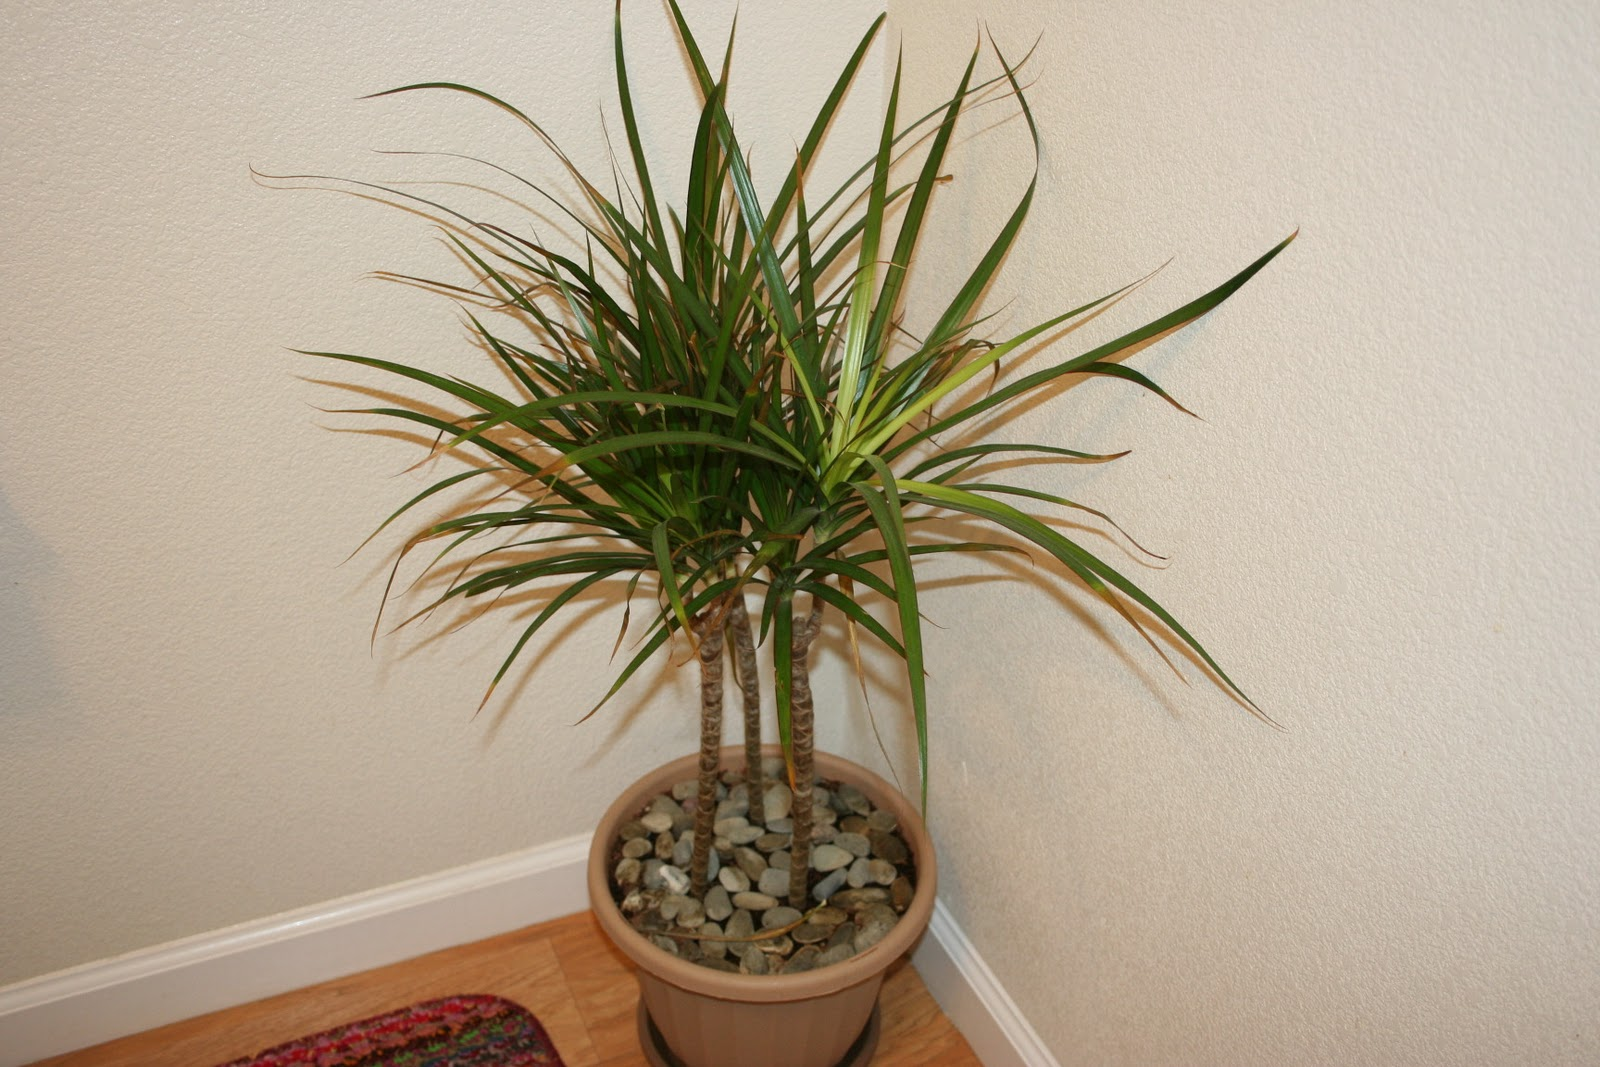 Small House Plants Home Depot: Life As It Comes: Decorating With House Plants